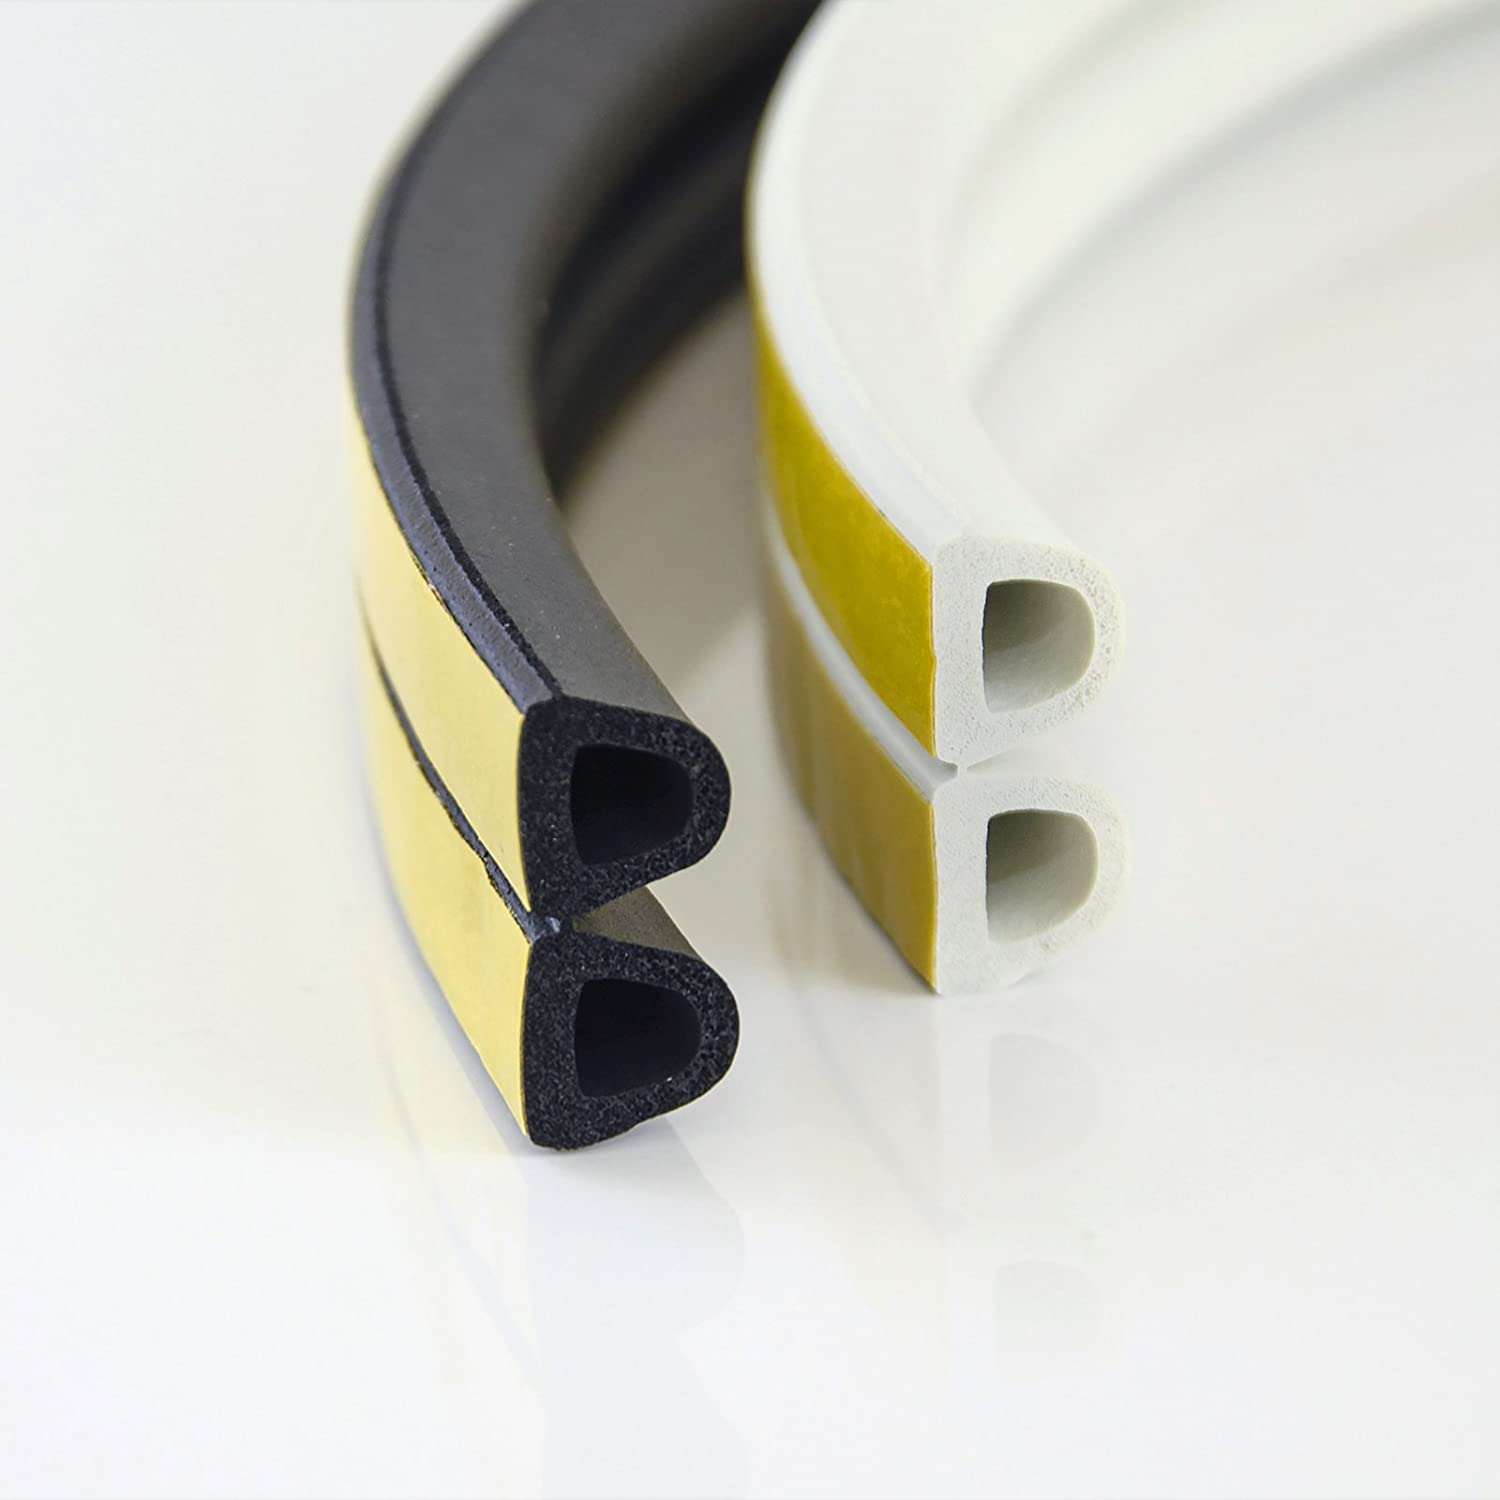 1m rubber sealing strip 14 x 12mm black D profile draught seal for windows and doors EPDM